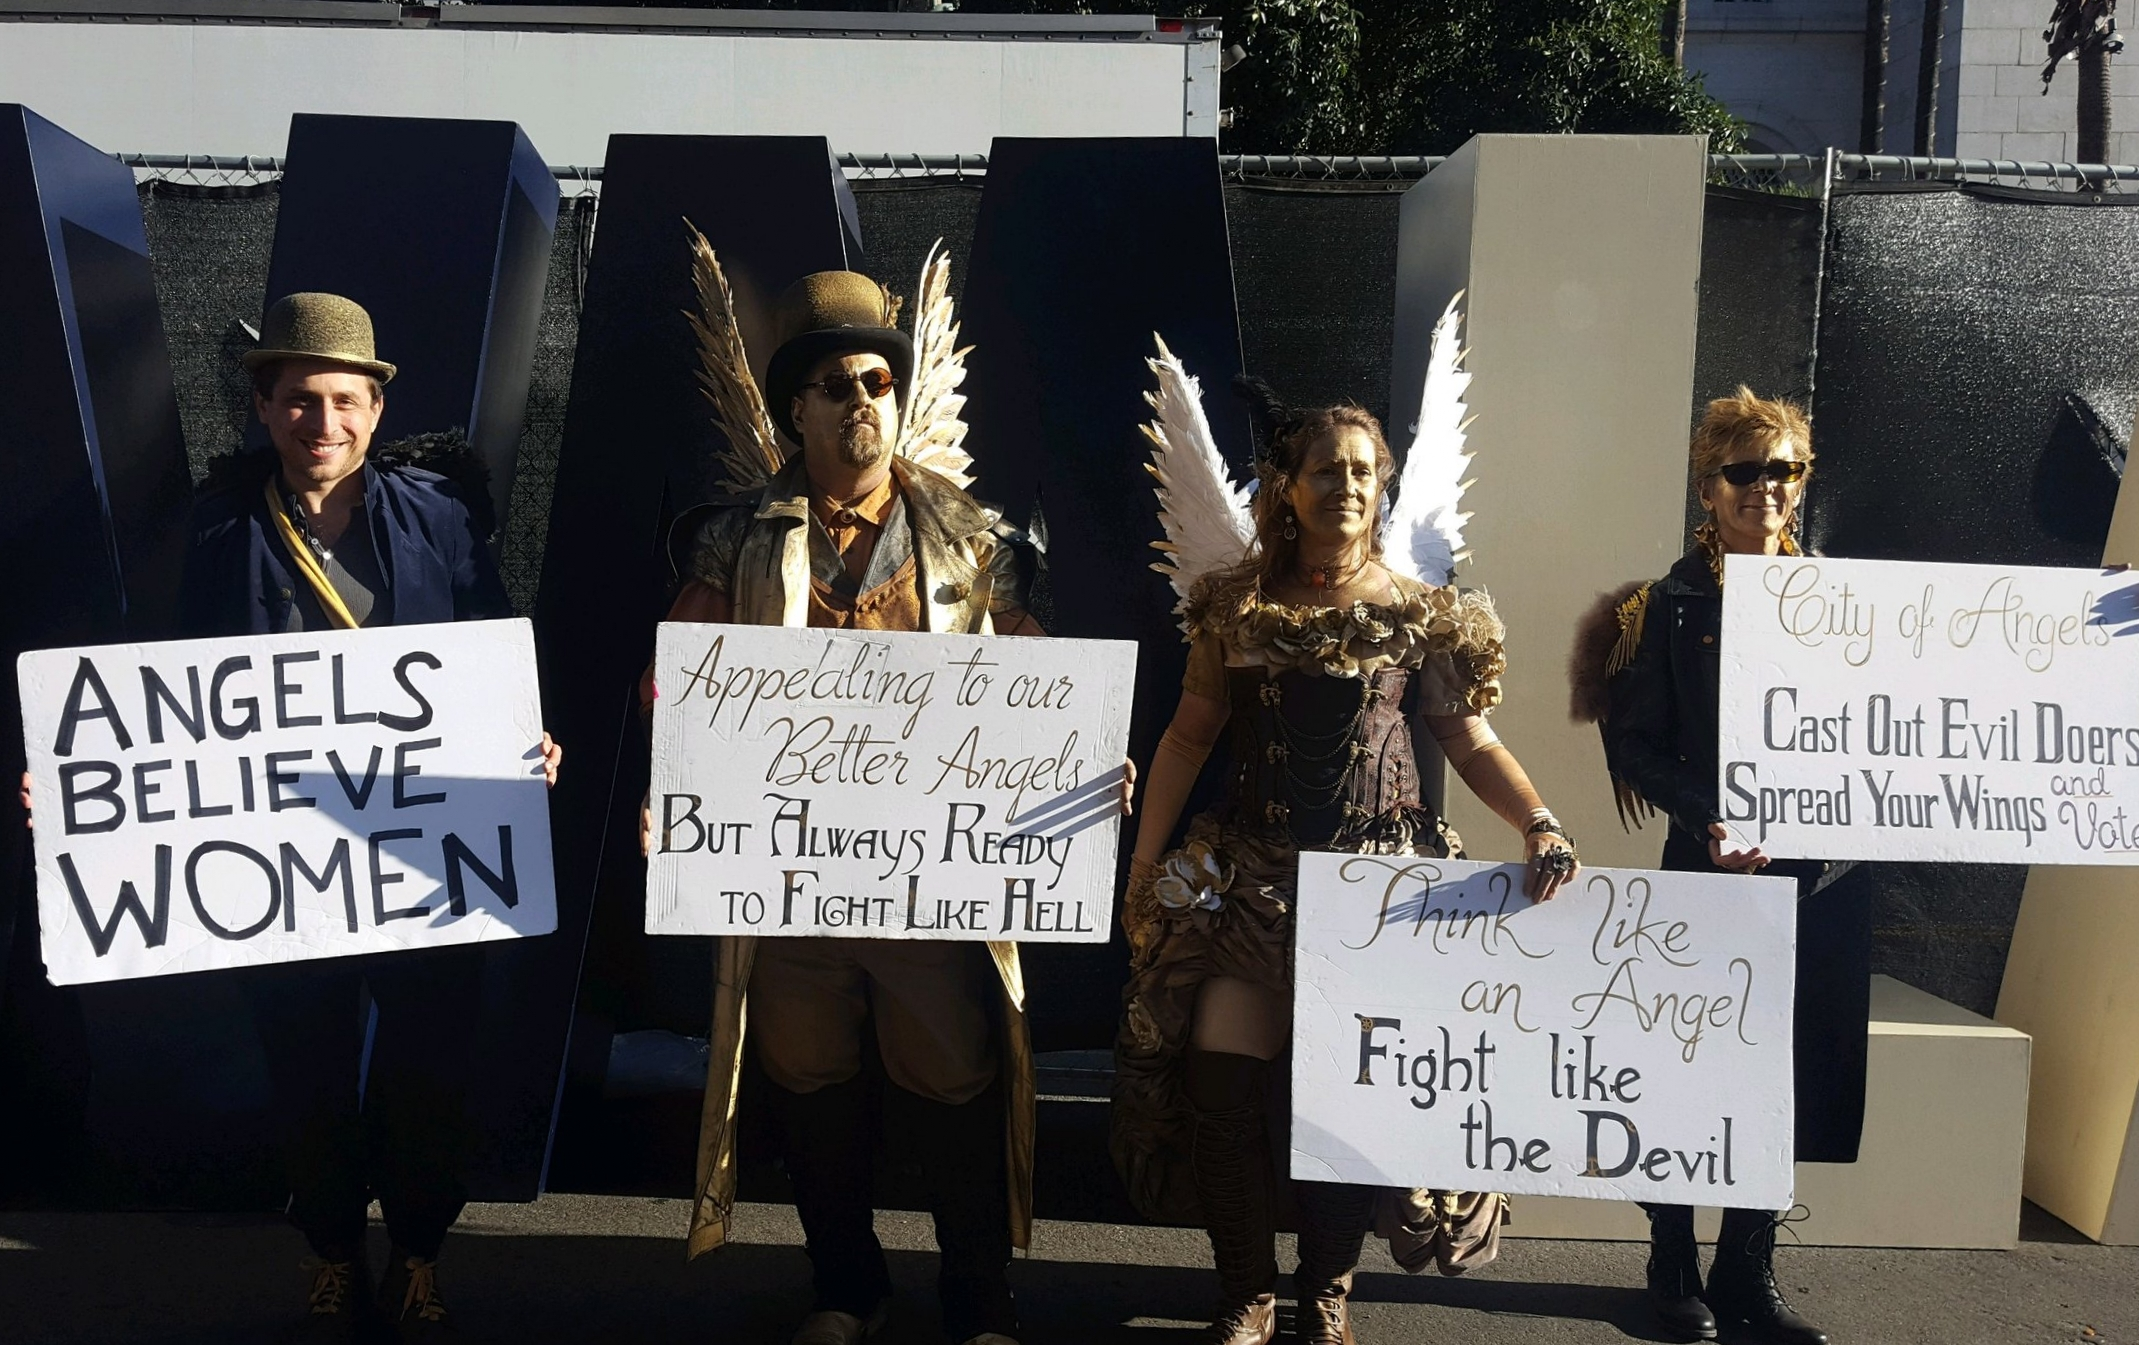 Angels with signs. Scenes from The 2018 Women's March Los Angeles, California with Max Kleinman @maxually